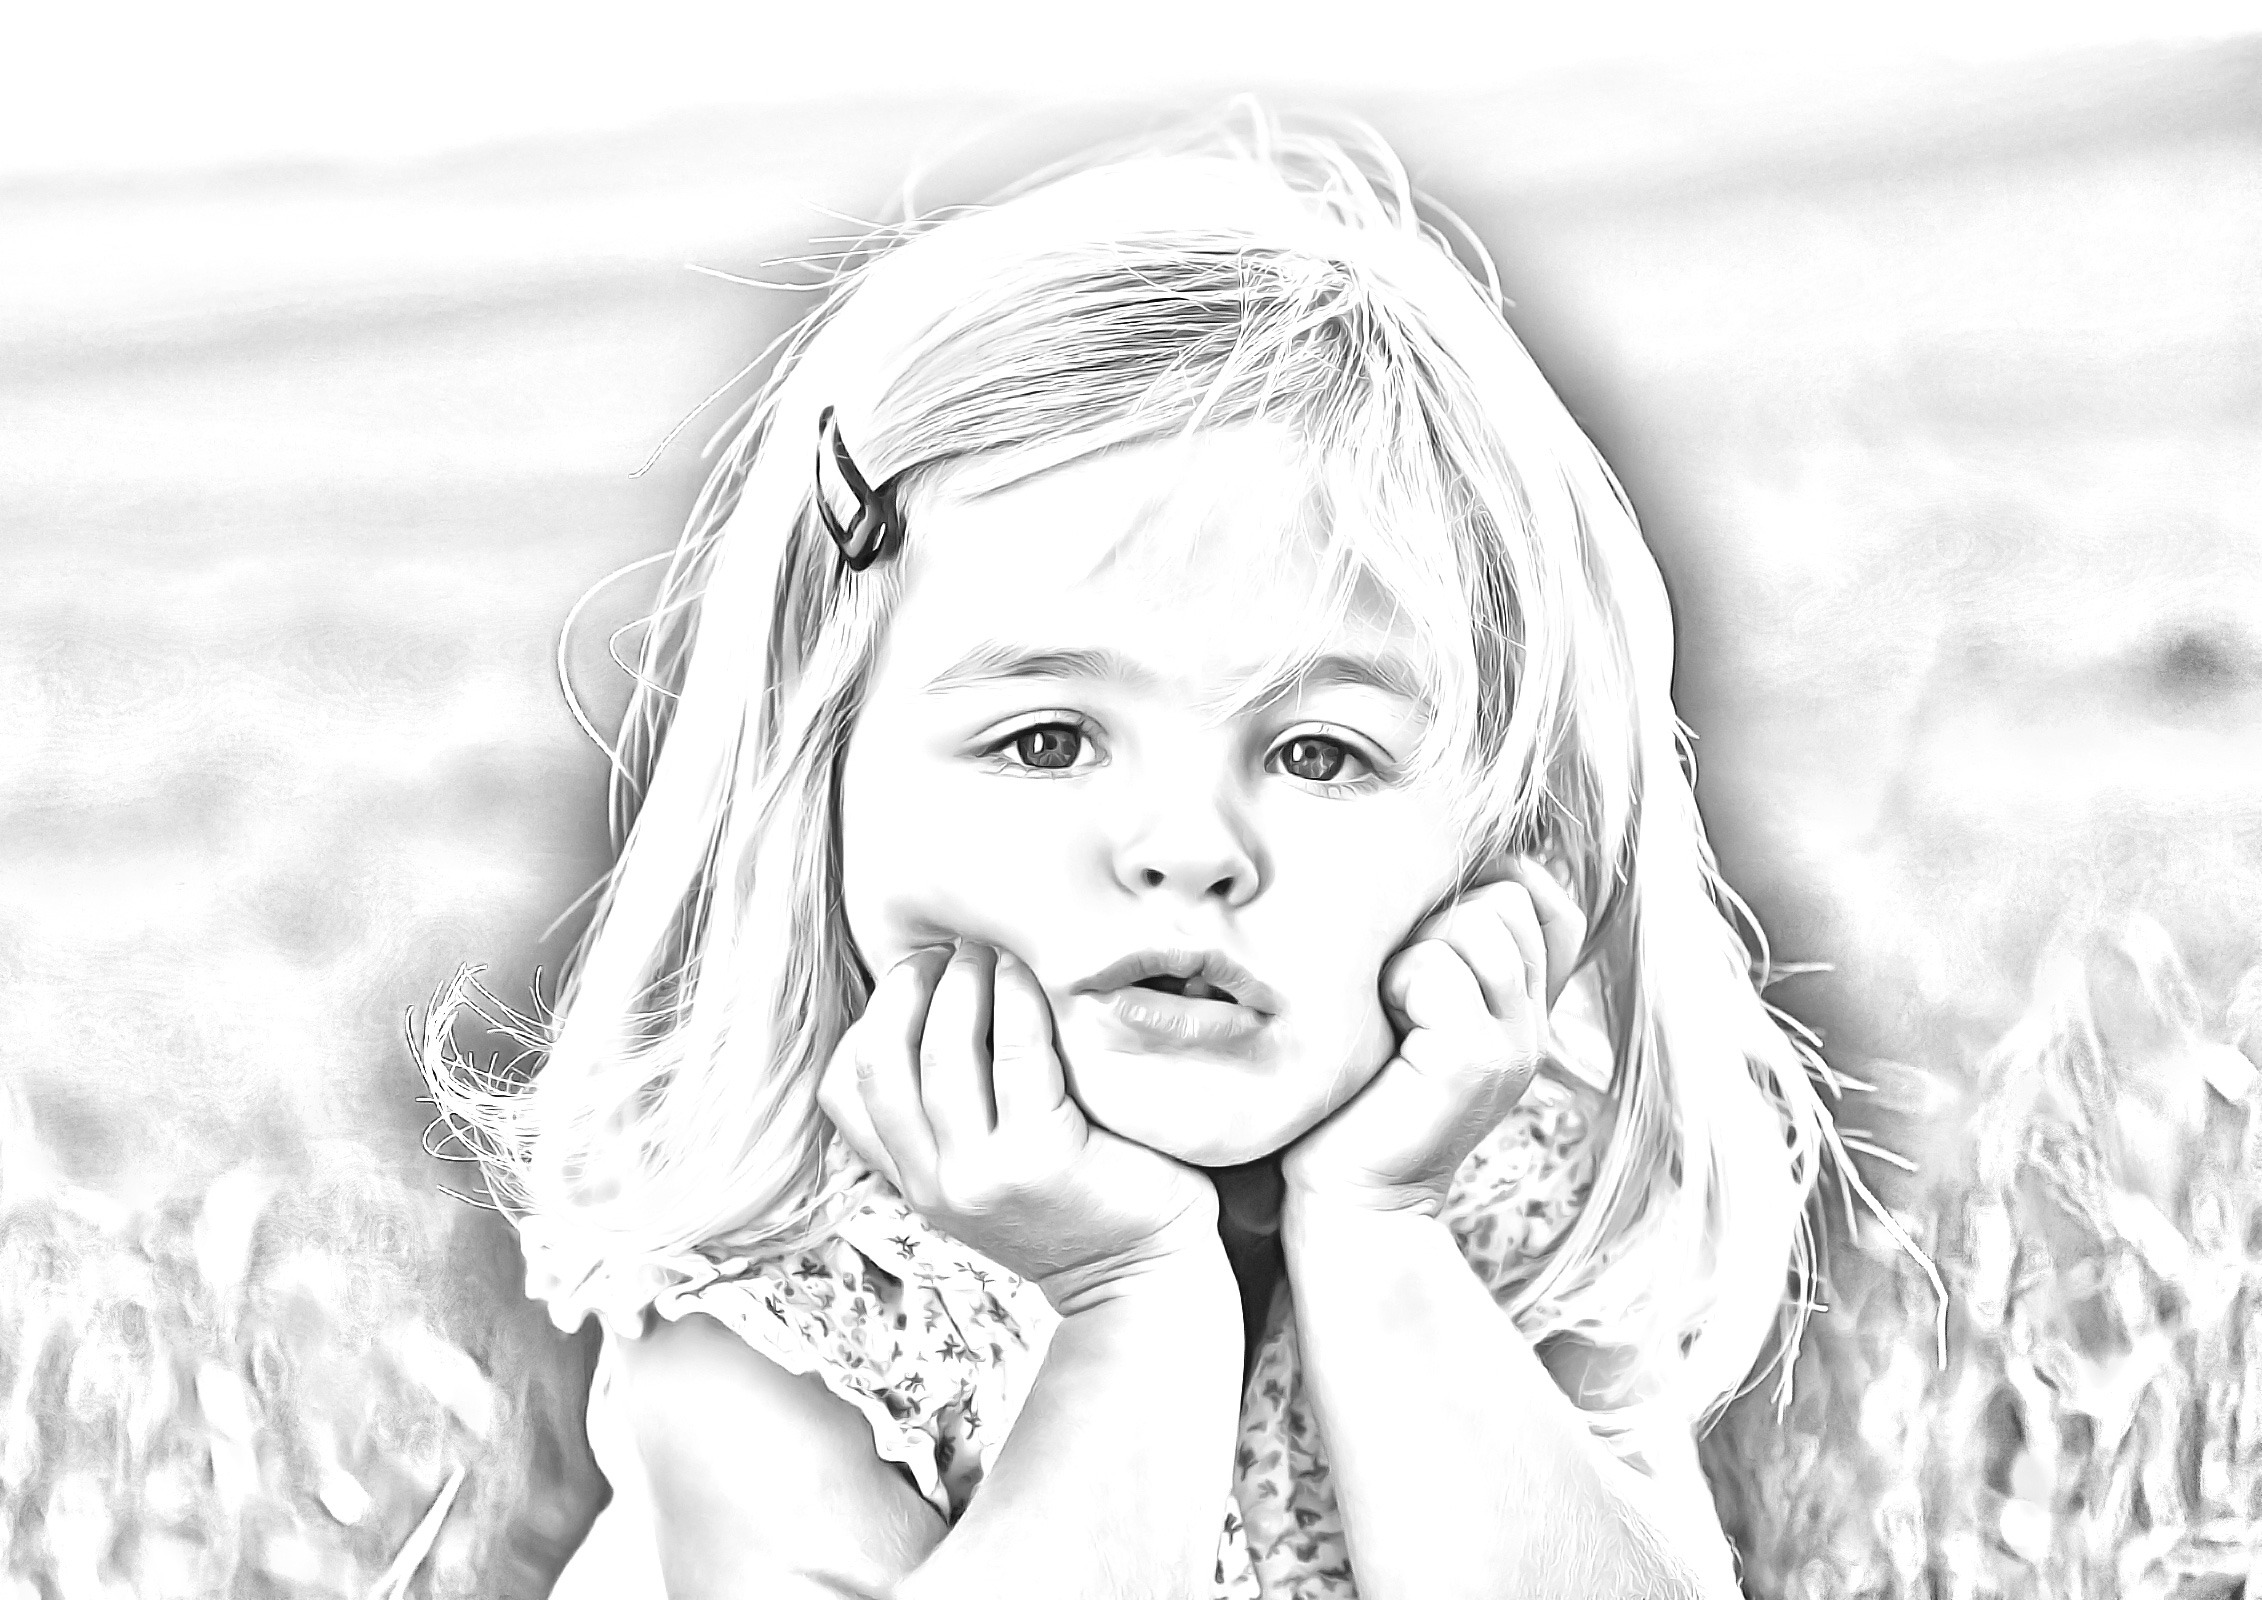 Pencil drawing effect photoshop action photo effects actions image set 1 jpg